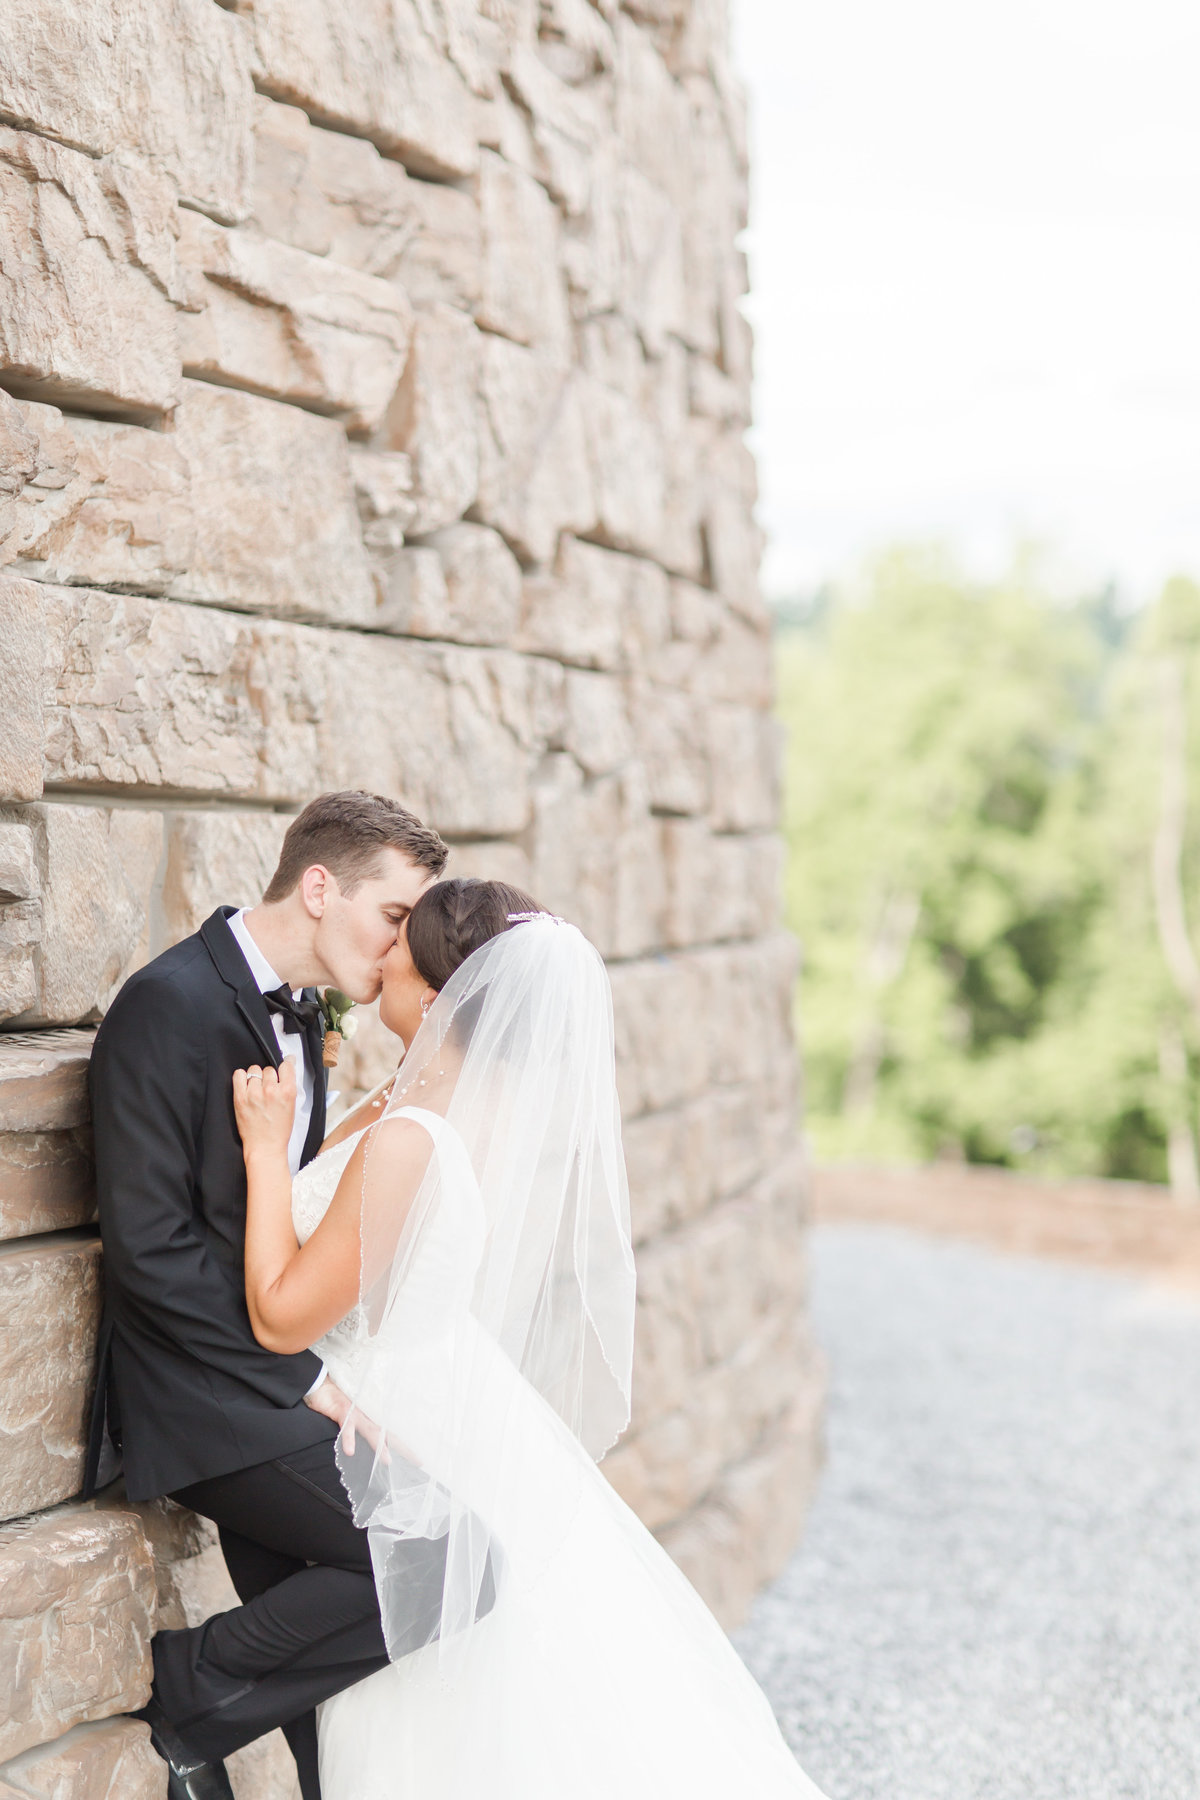 HYP_Kristina_and_Benedikt_Wedding_0072